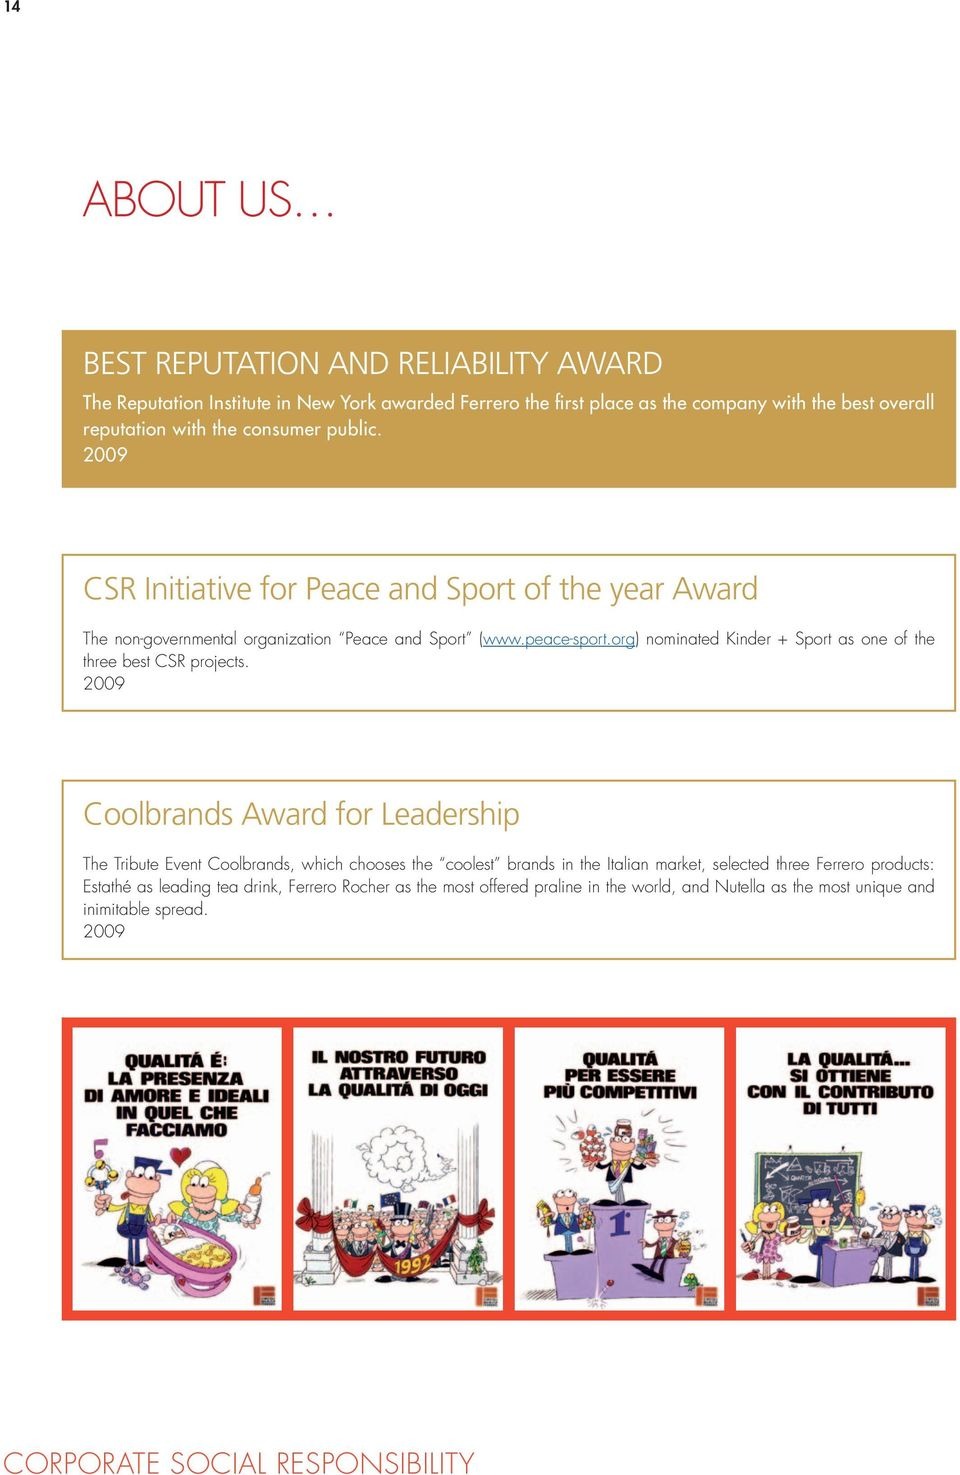 org) nominated Kinder + Sport as one of the three best CSR projects.